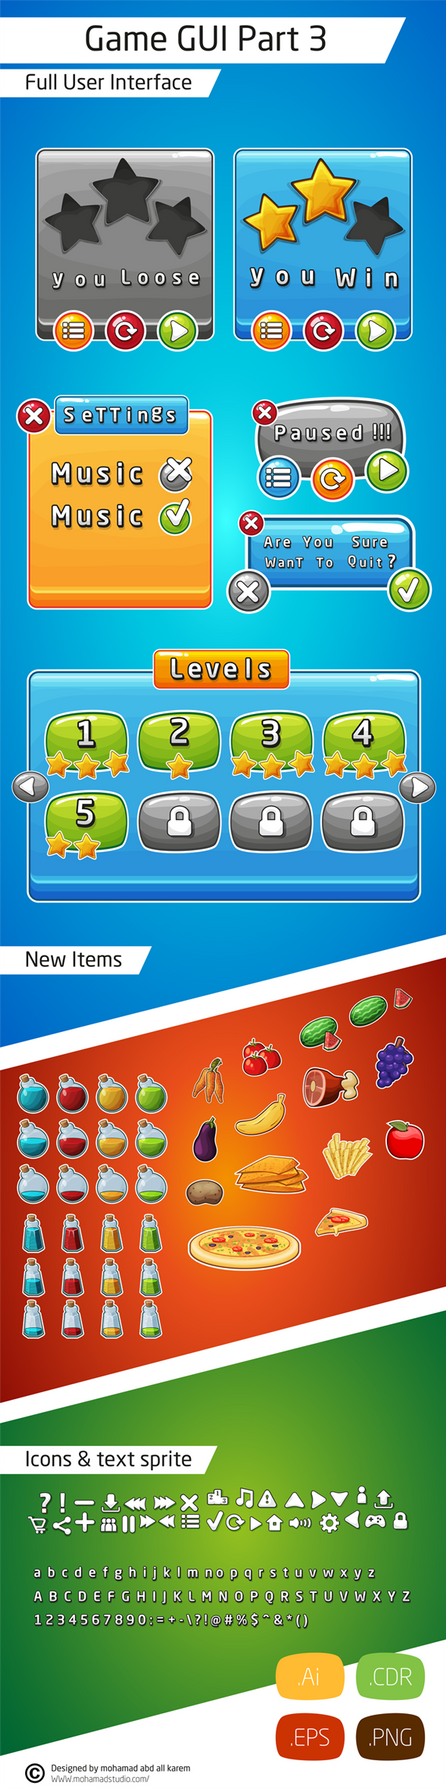 Game Gui Part 3 by mohanmadabd